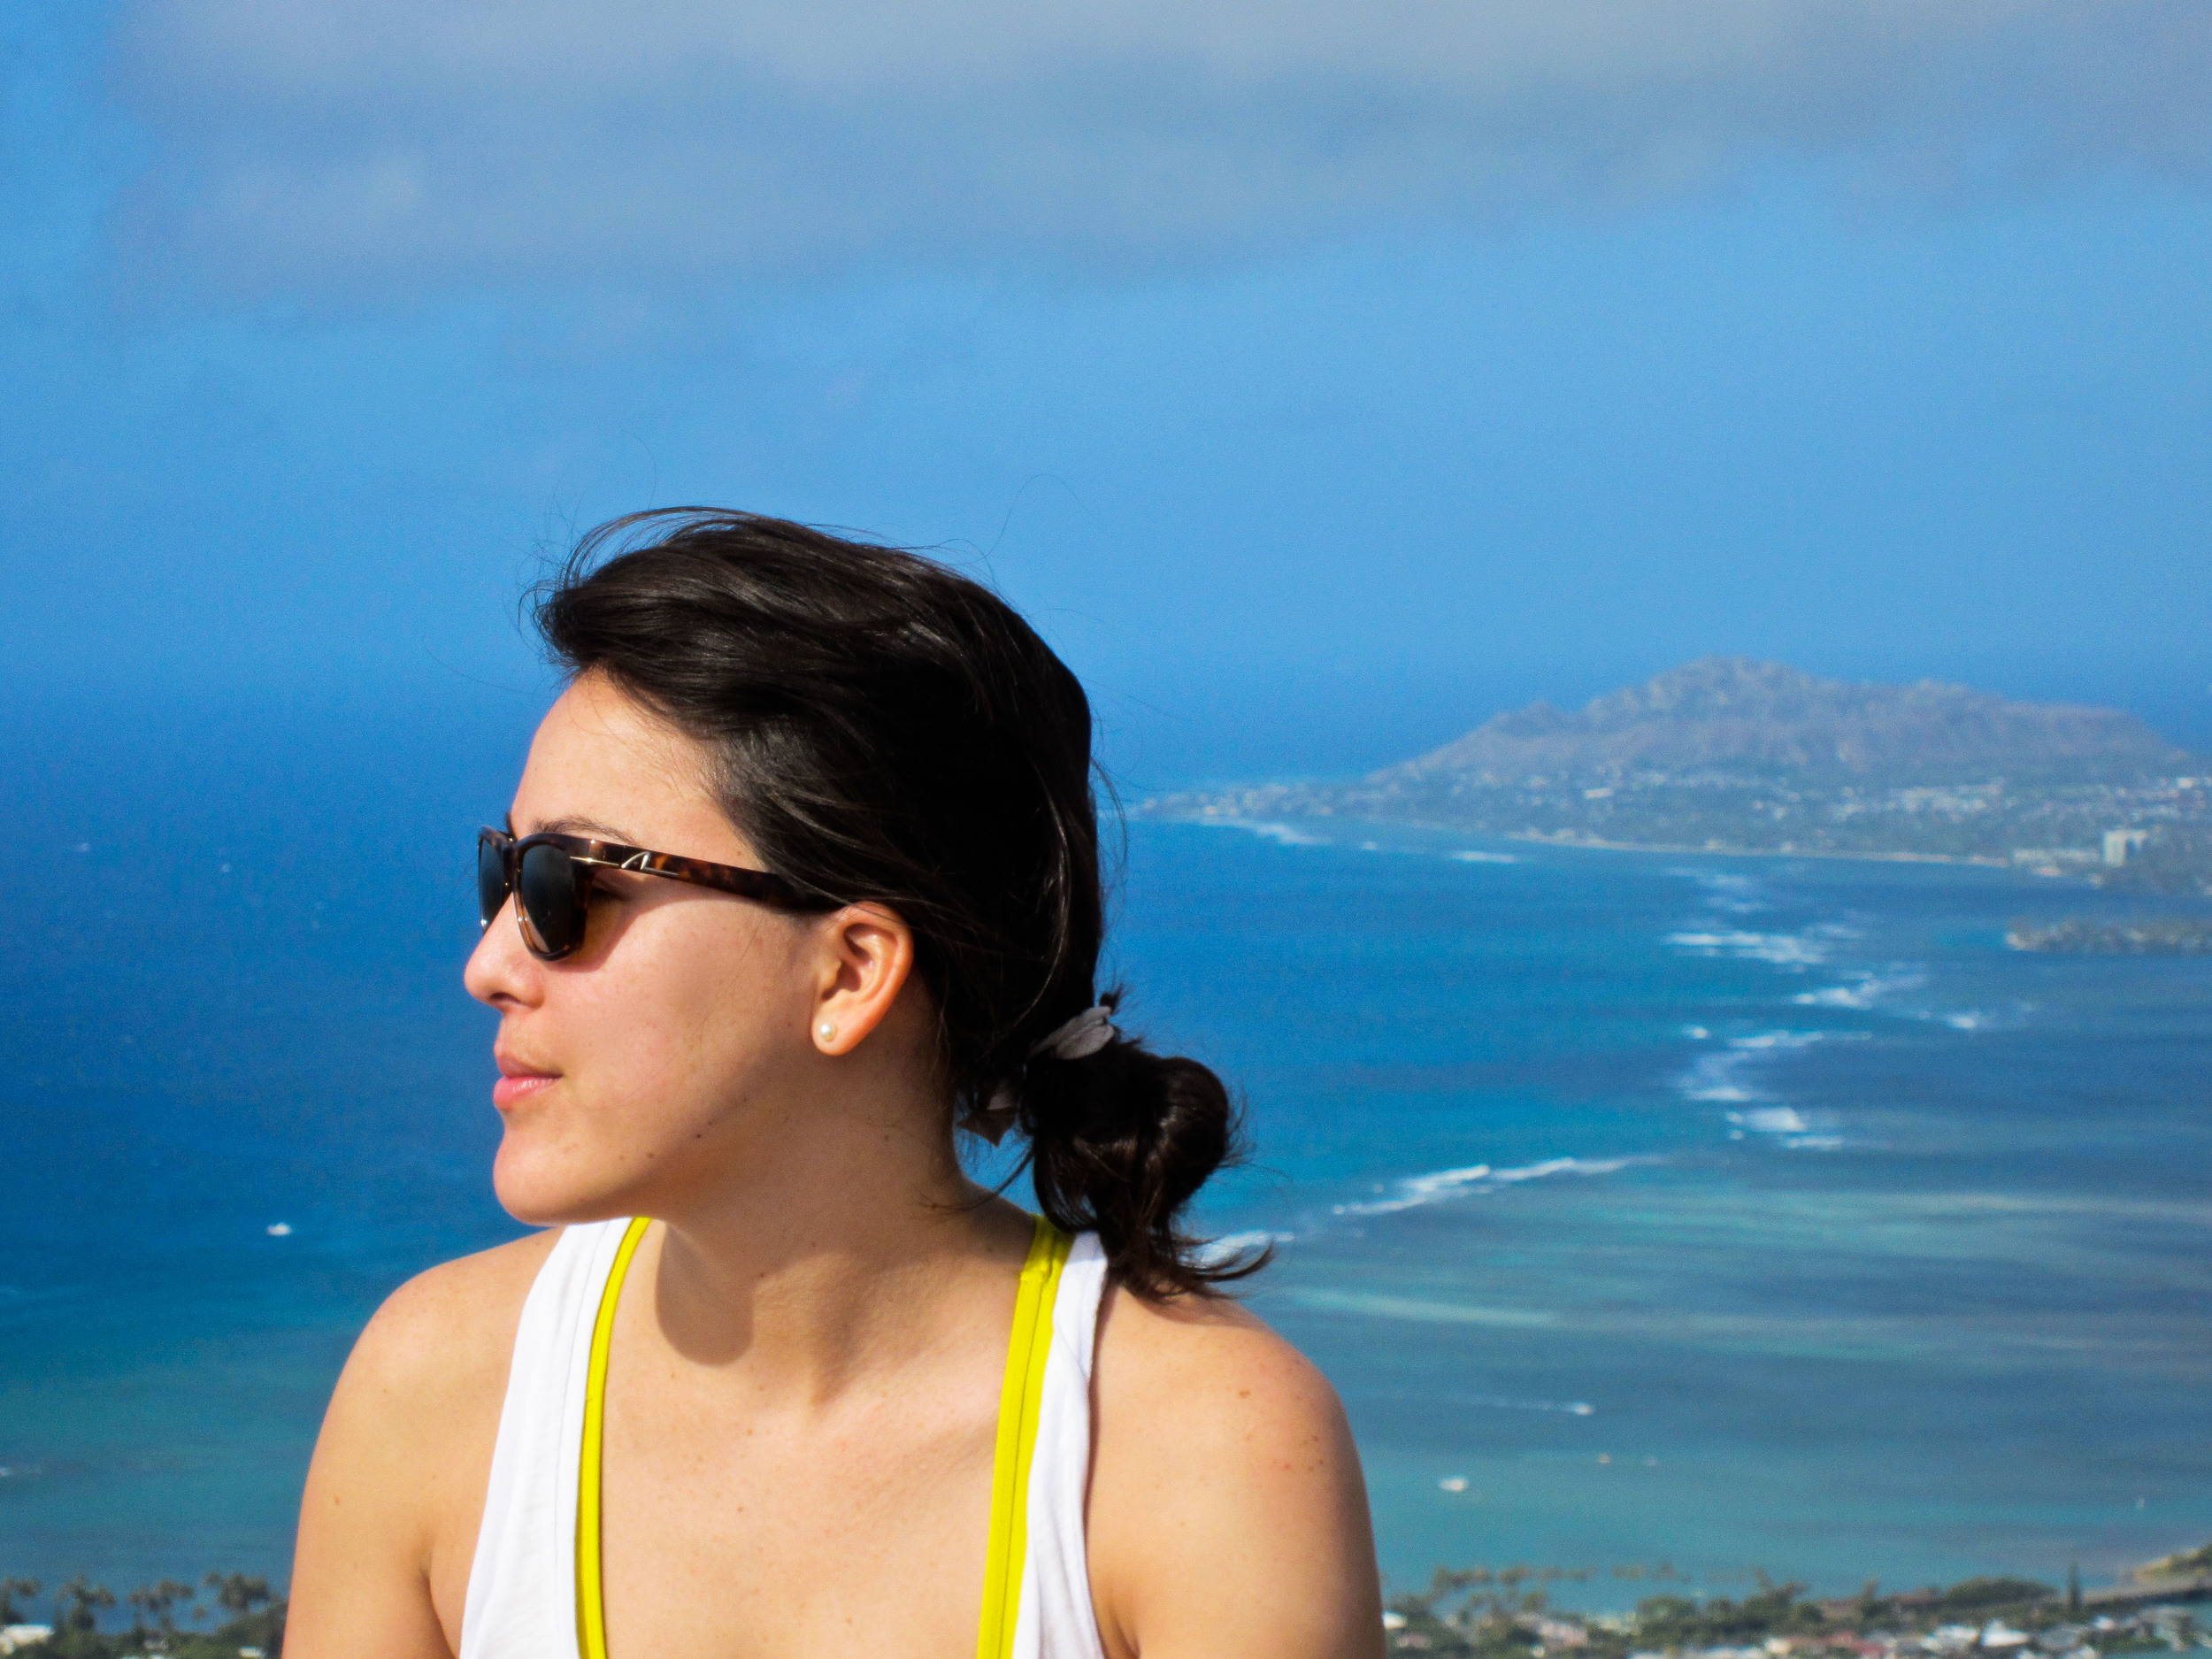 annie alue six koko crater